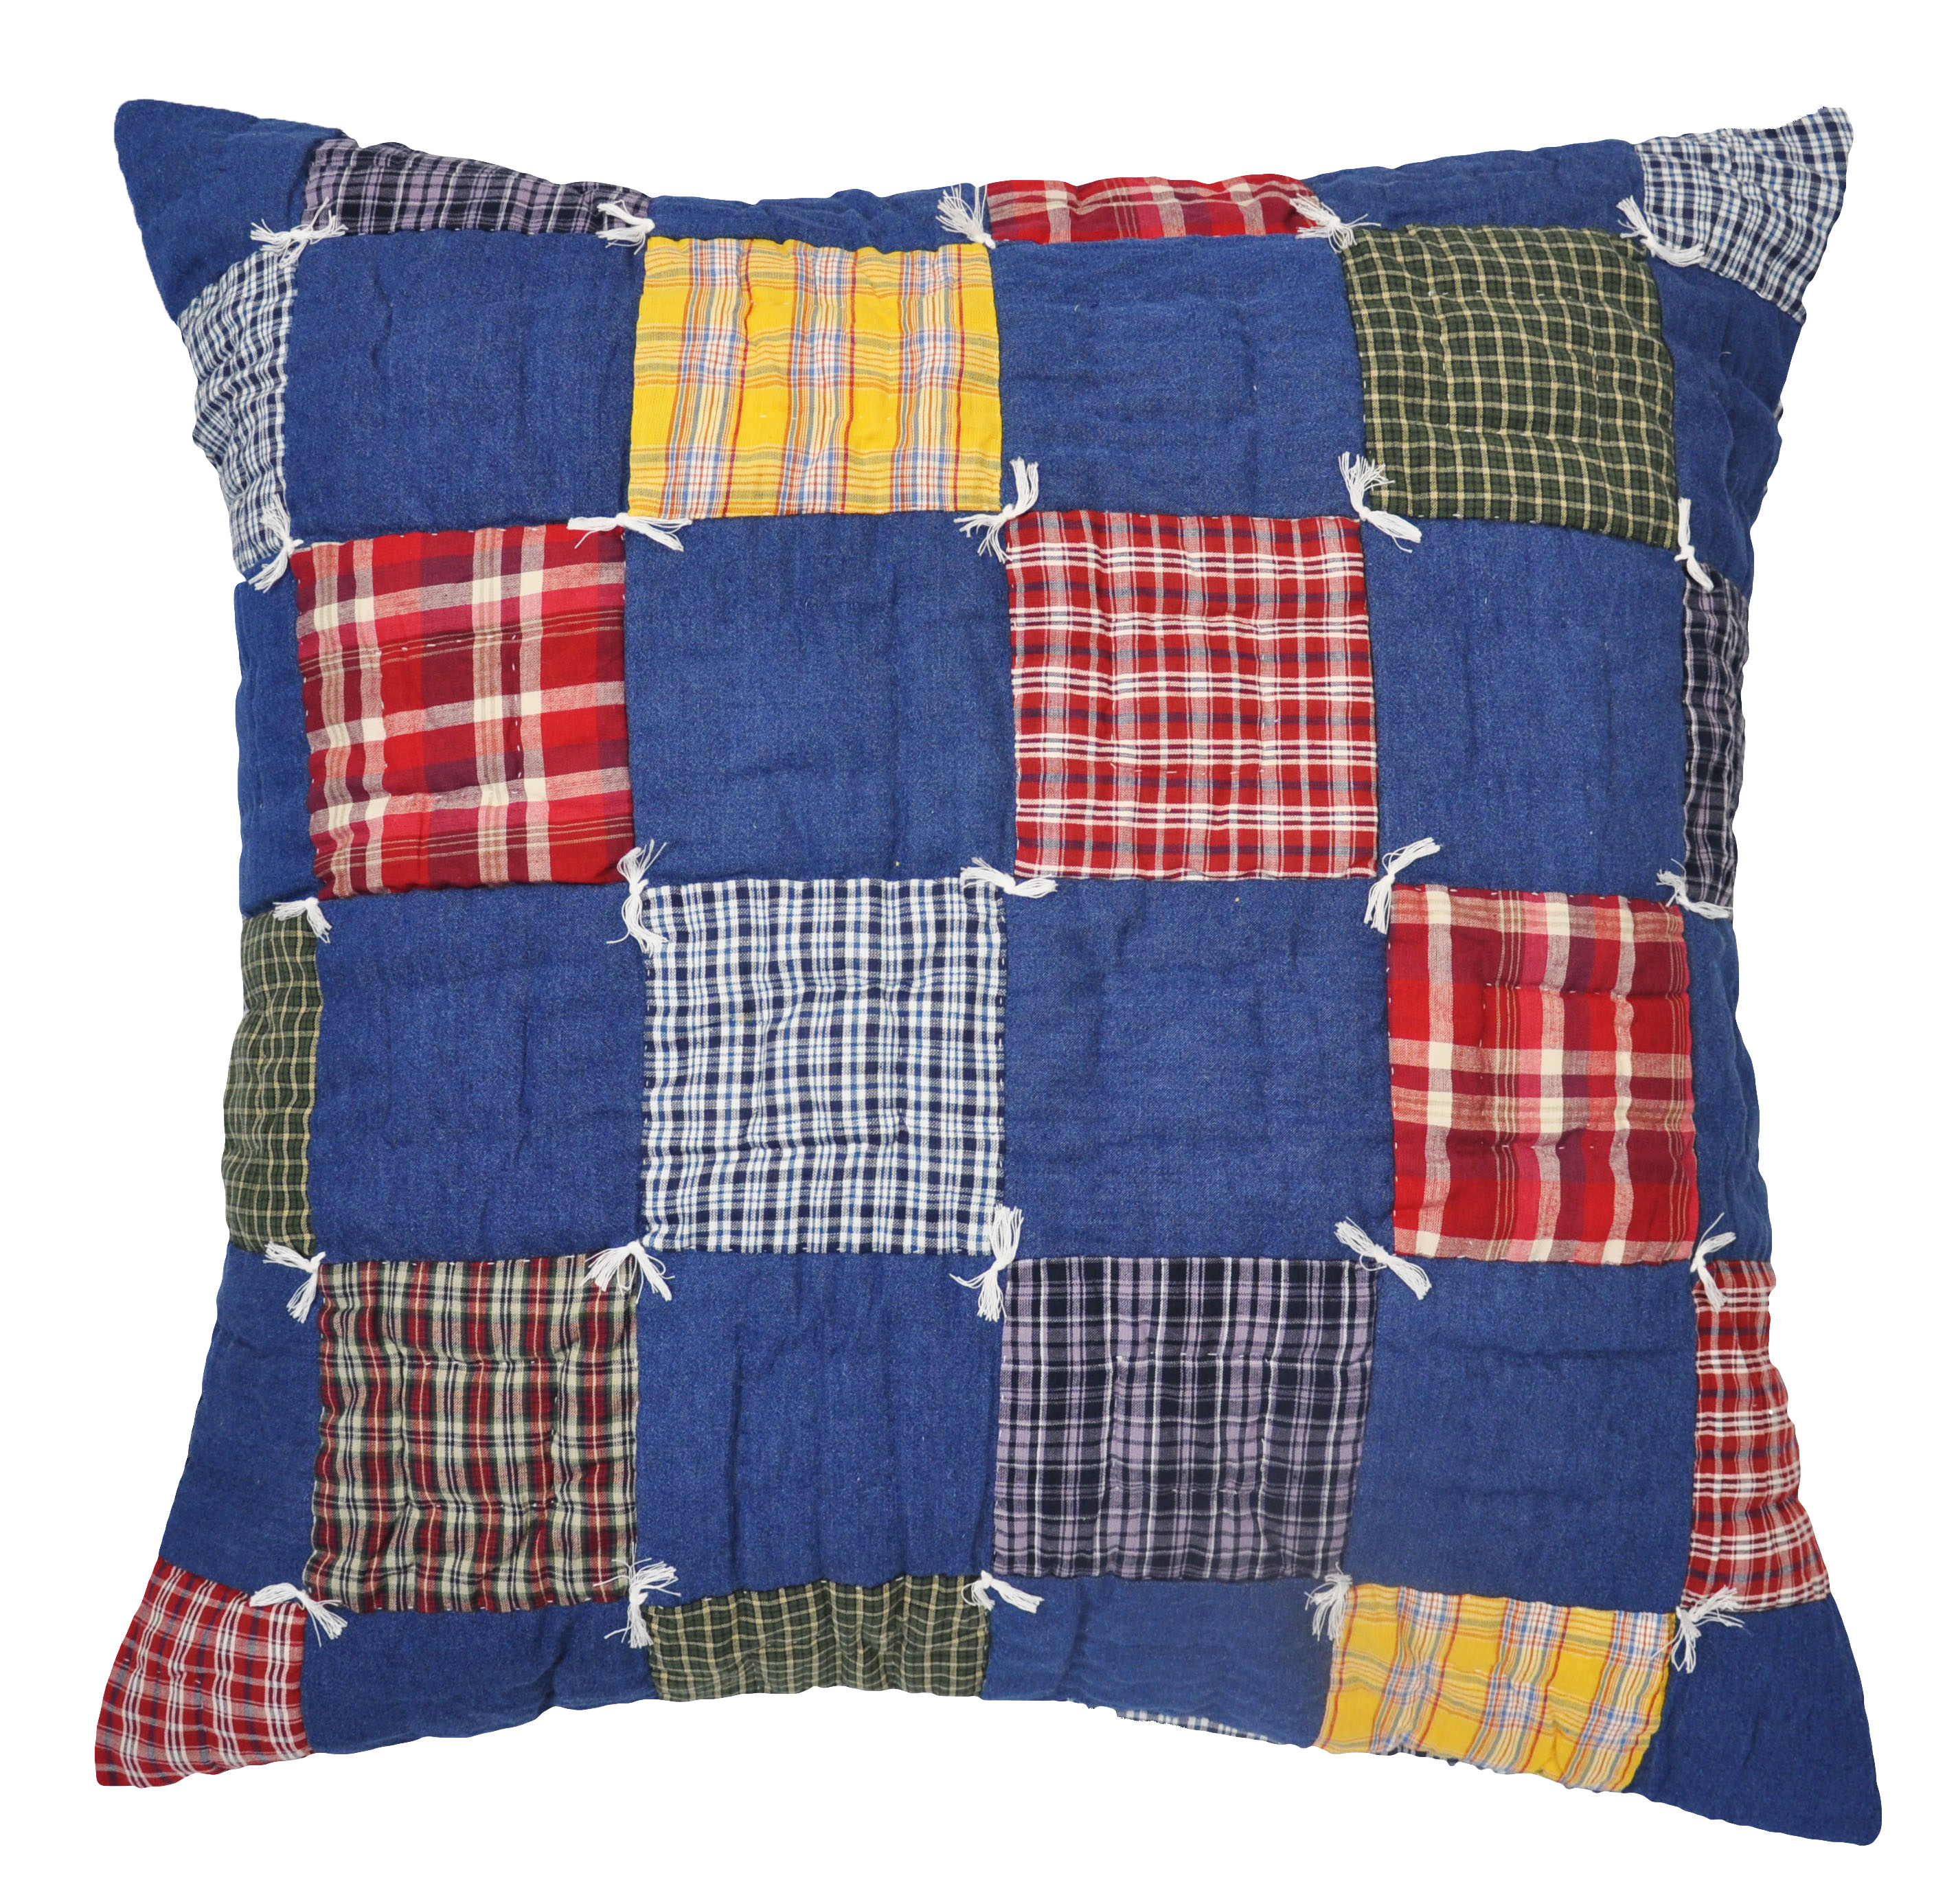 Caftan Traditional Patchwork Denim Euro Throw Pillow